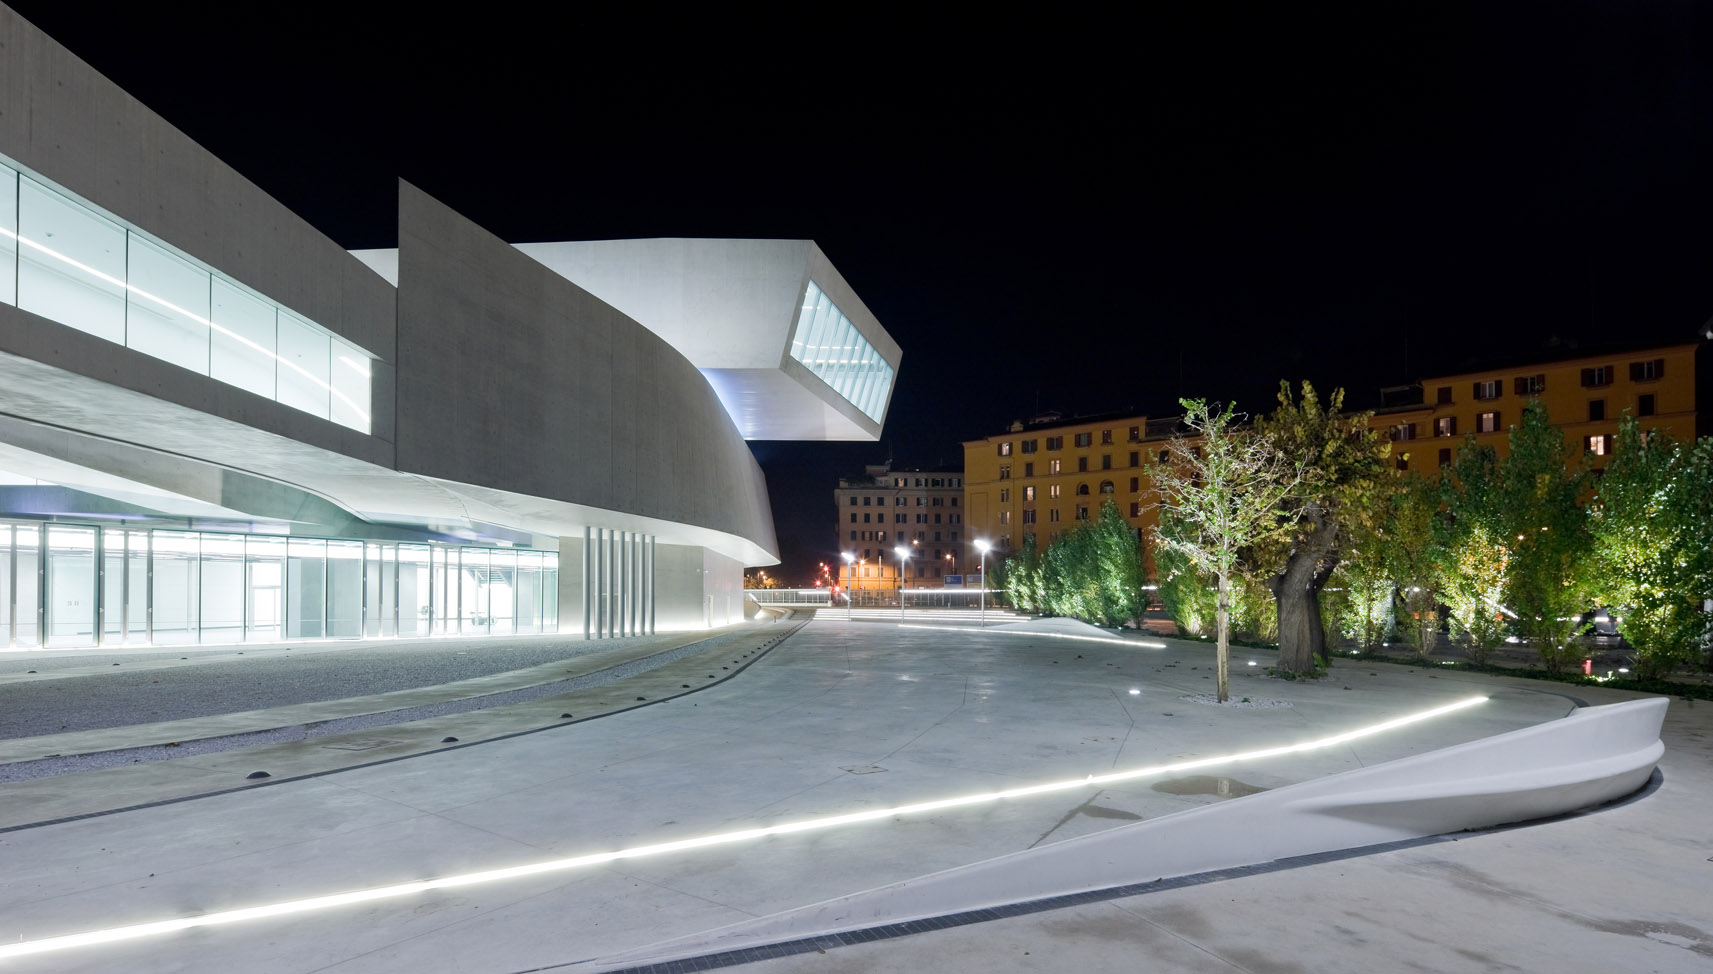 exterior of Zaha Hadid's MAXXI- National Museum of XXI Century Arts